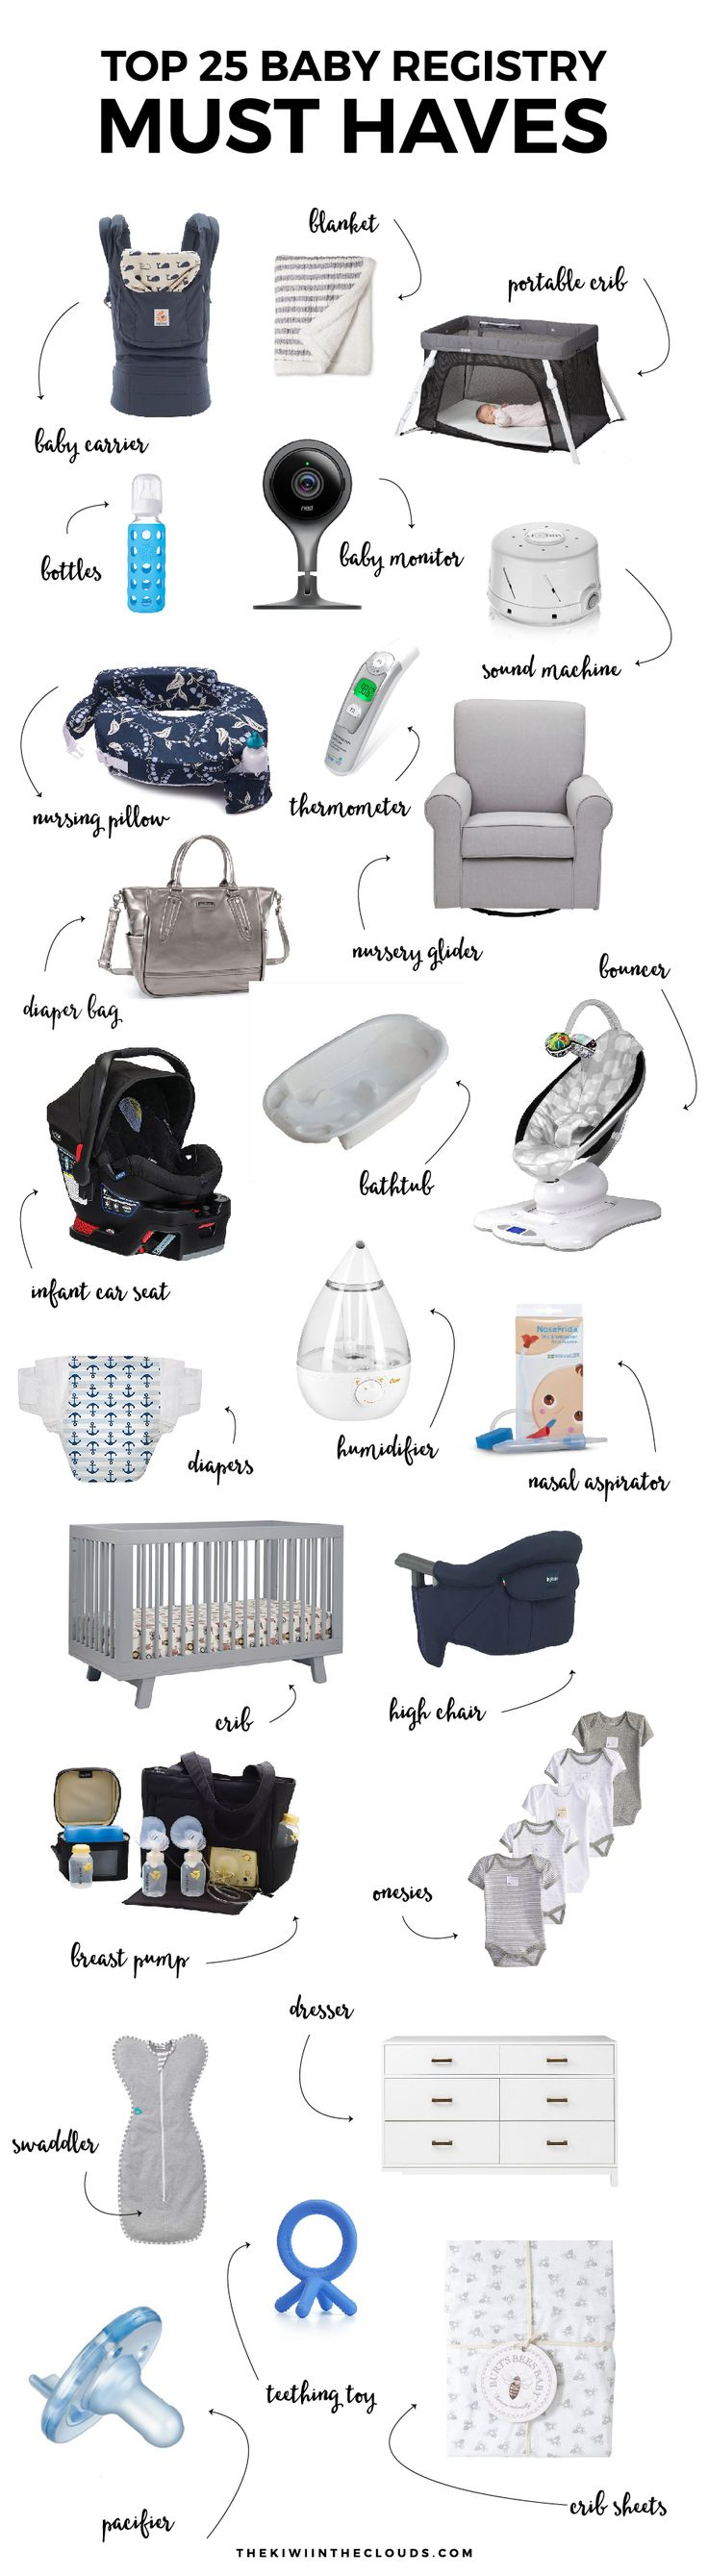 Top 25 Baby Registry Must Haves | Creating the perfect registry can be overwhelming, time consuming and costly. Skip the mistakes of a first time mom and discover what baby items you actually need!